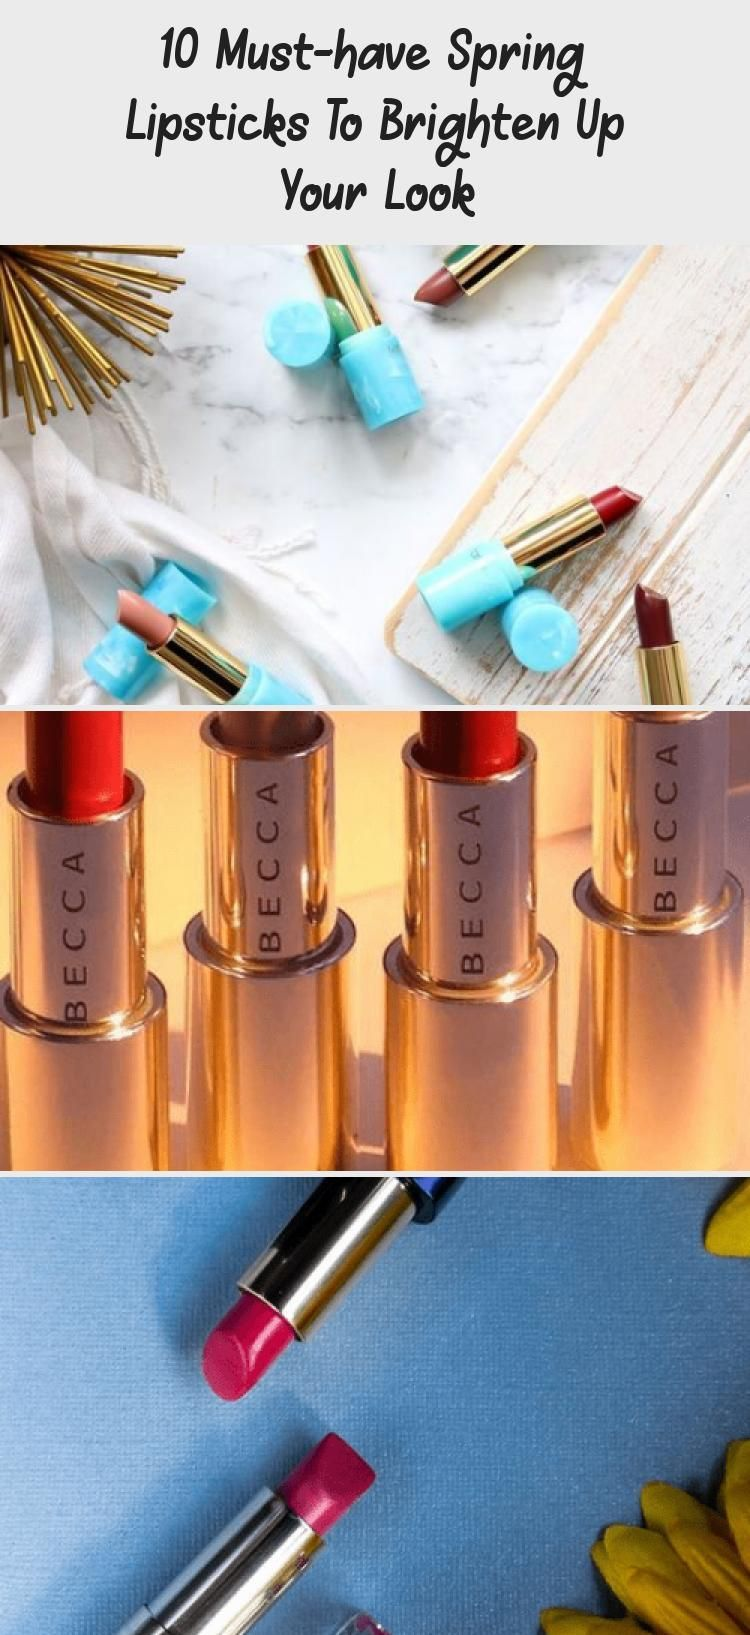 10 Must-have Spring Lipsticks To Brighten Up Your Look -